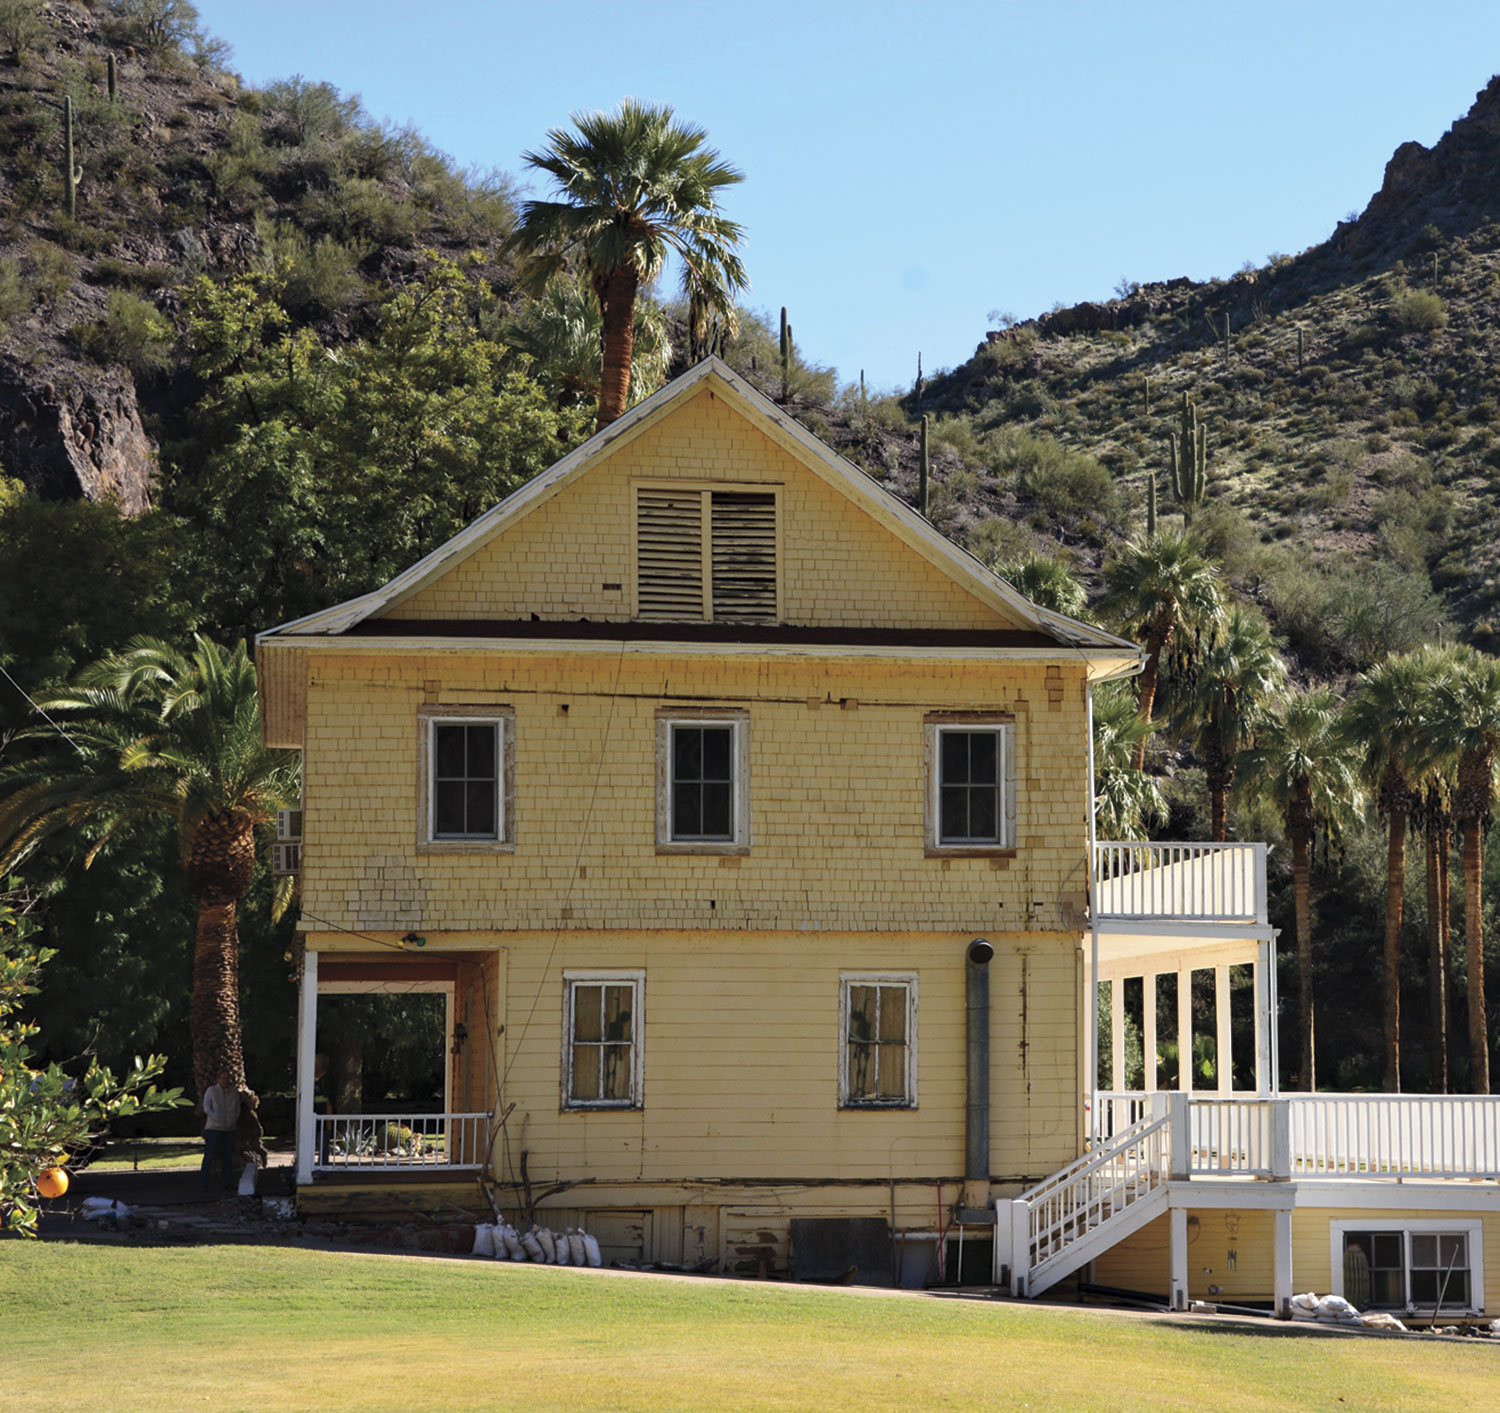 The Kennedy Lodge, pre-restoration; photo courtesy Graving Haven/Castle Hot Springs